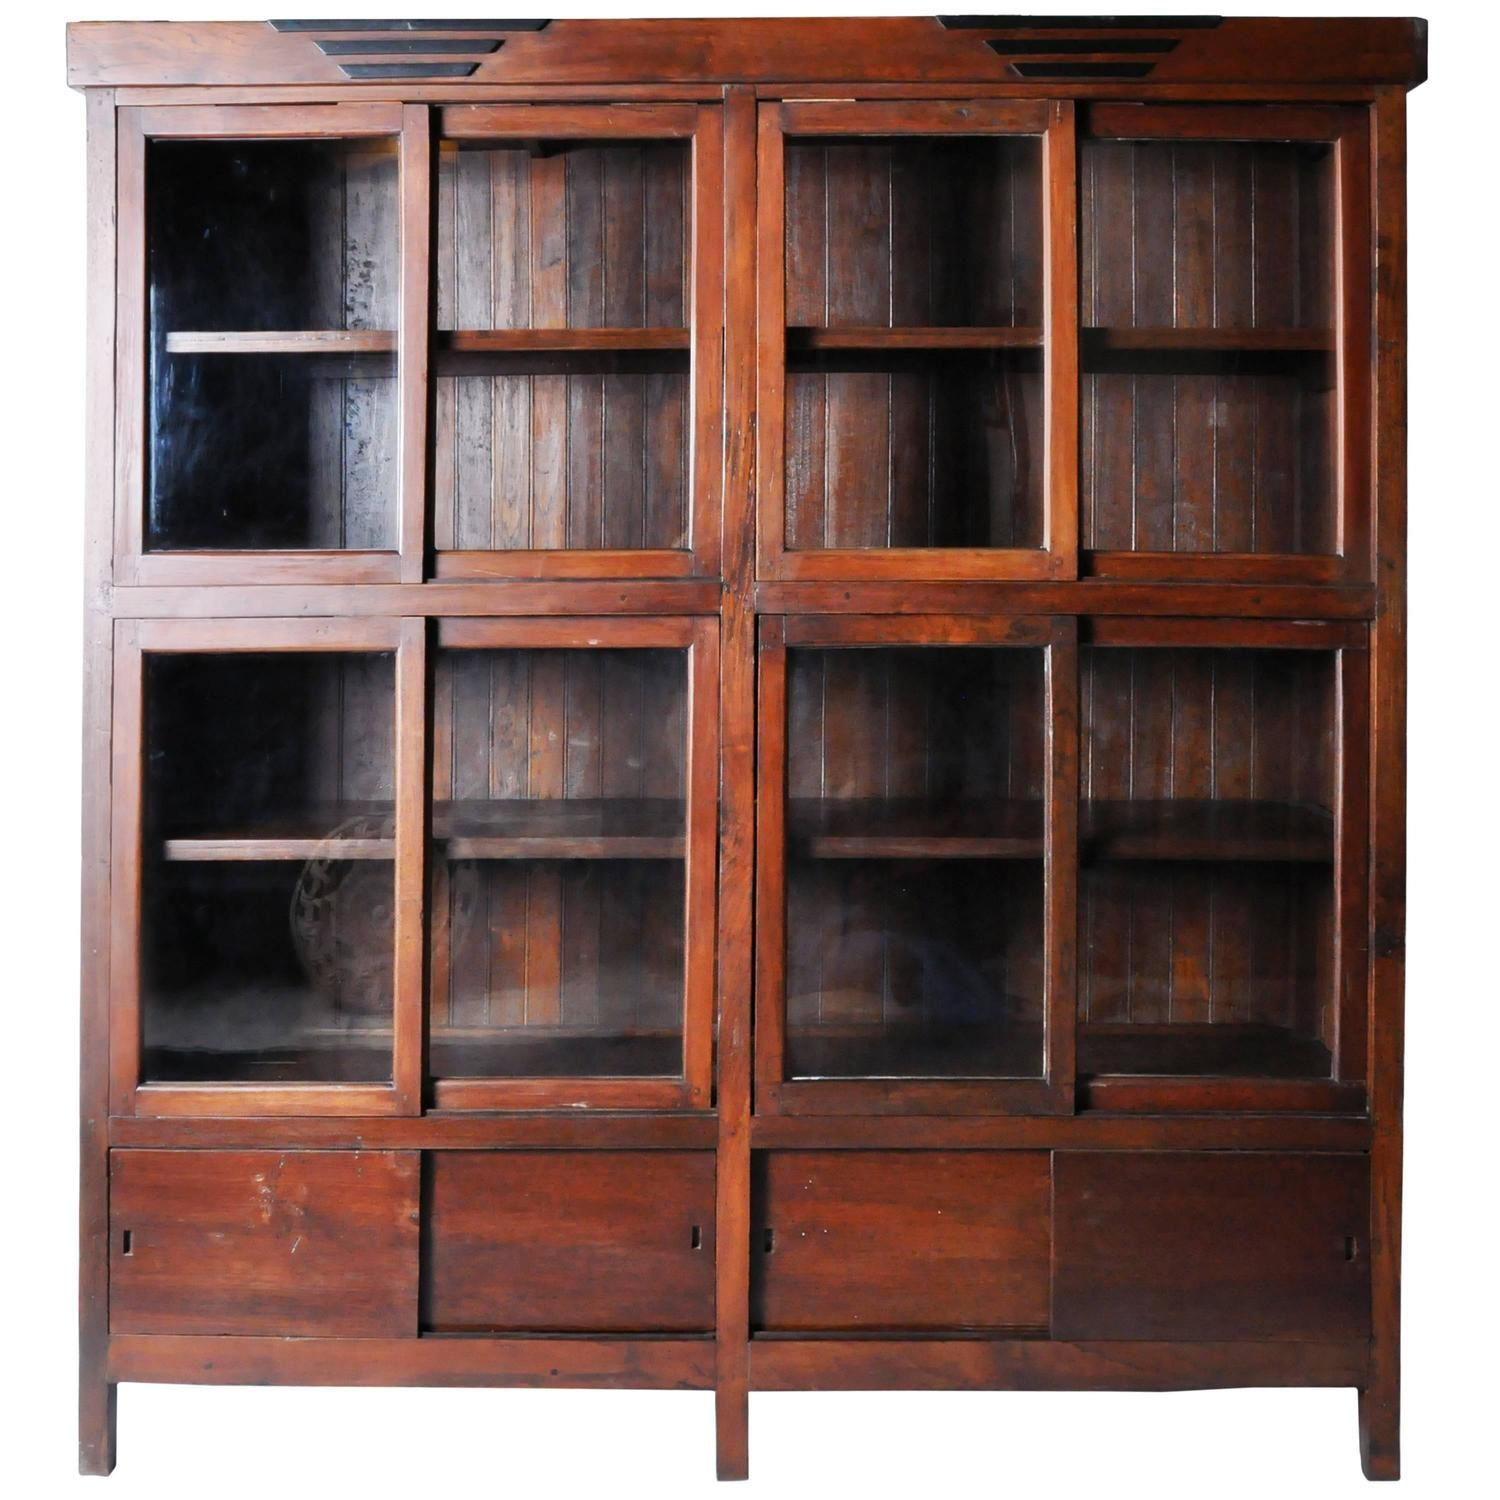 British Colonial Style Bookcase See More Antique And Modern Furniture At Https Www 1stdibs Colonial Furniture British Colonial Decor British Colonial Style